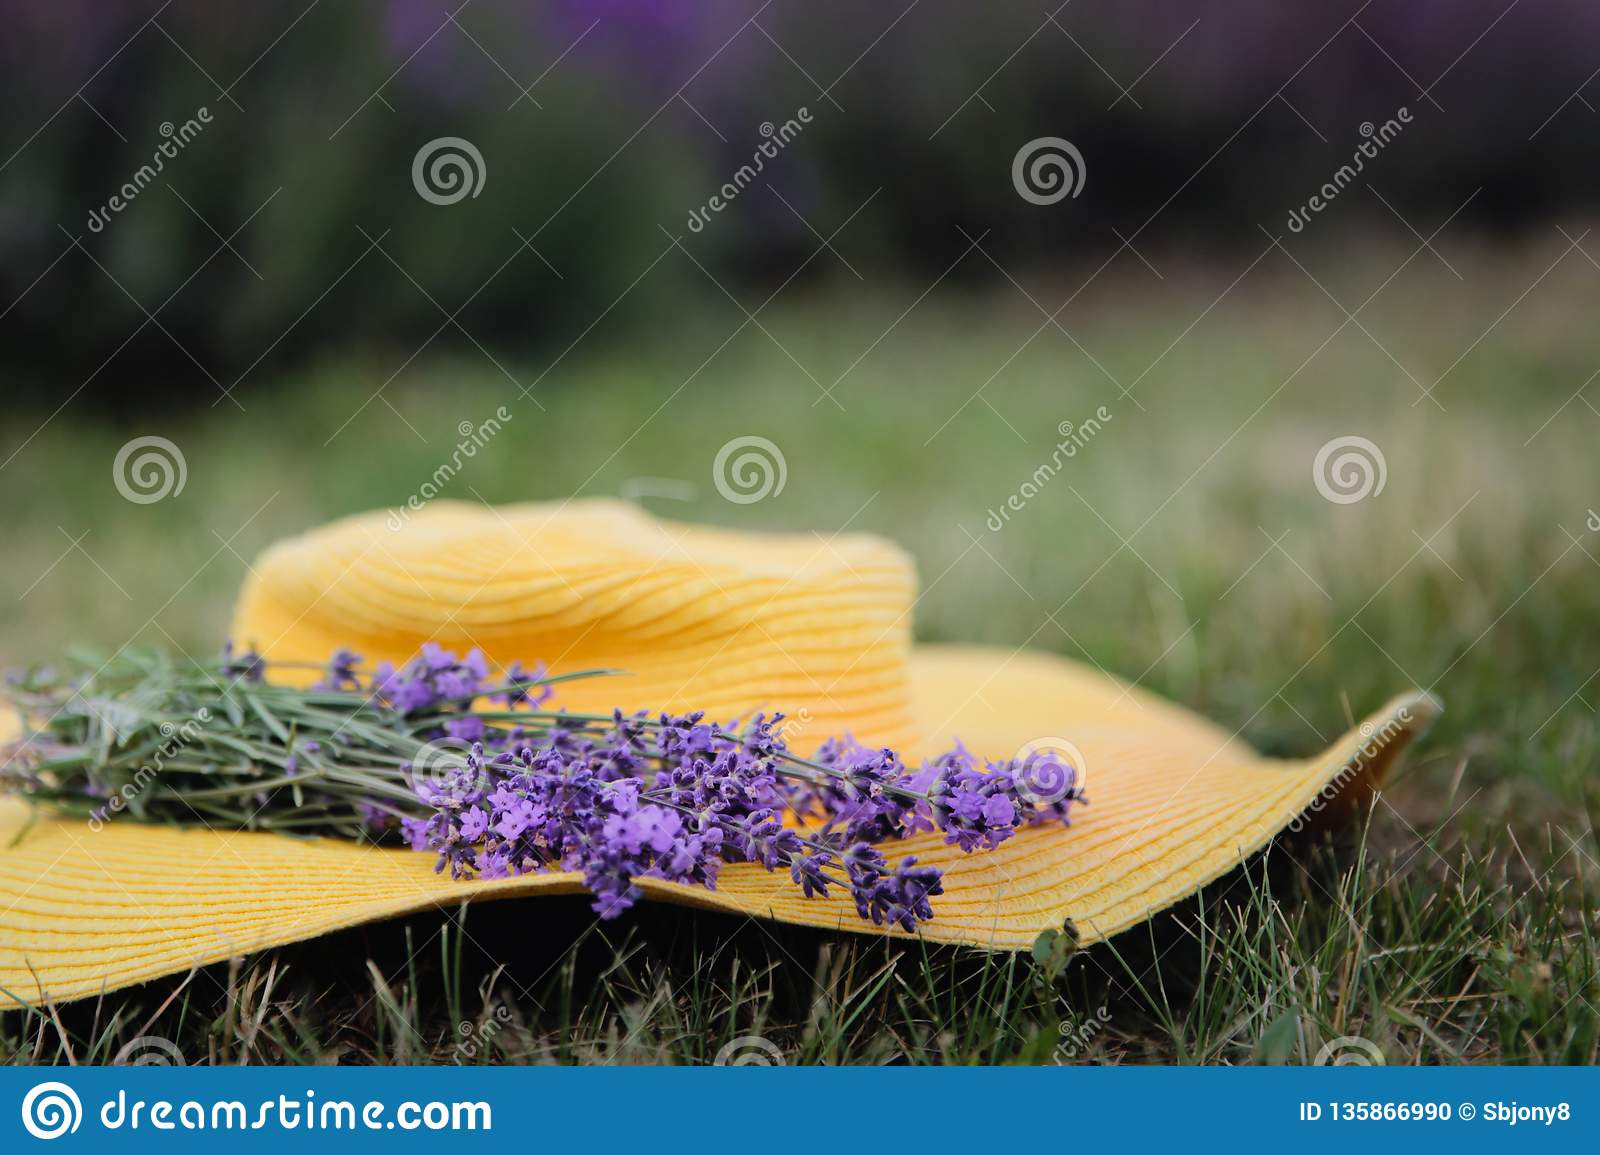 Lavender flowers on a yellow hat in summer in Hungary